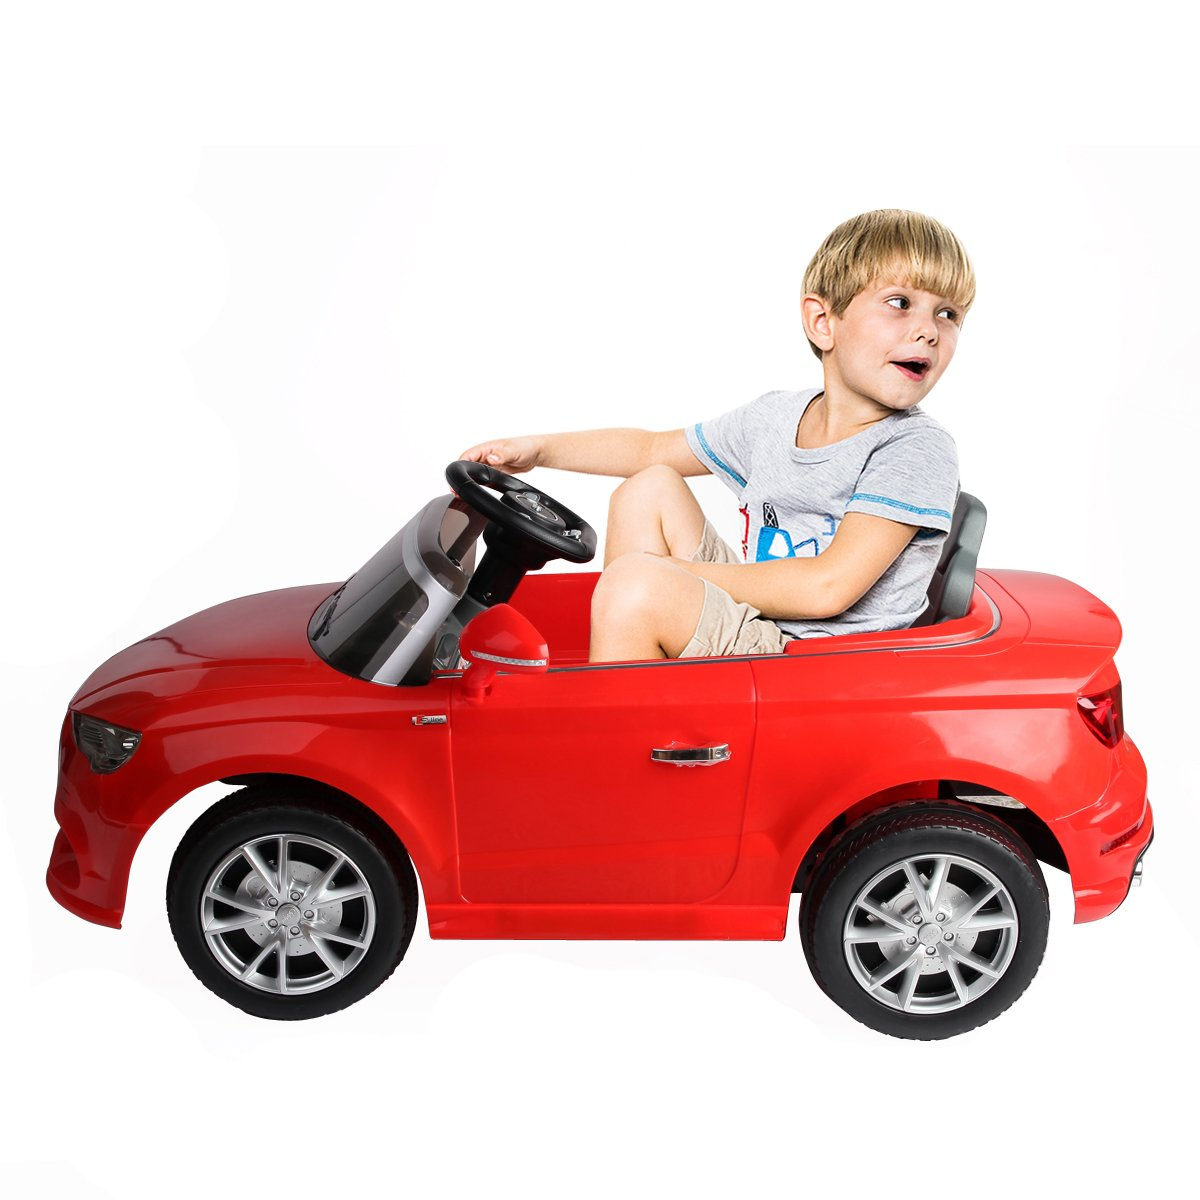 Costzon Licensed Audi A3 Kids Ride On Car 12V Battery Powered RC Ride-On Toy Vehicle W/LED Light